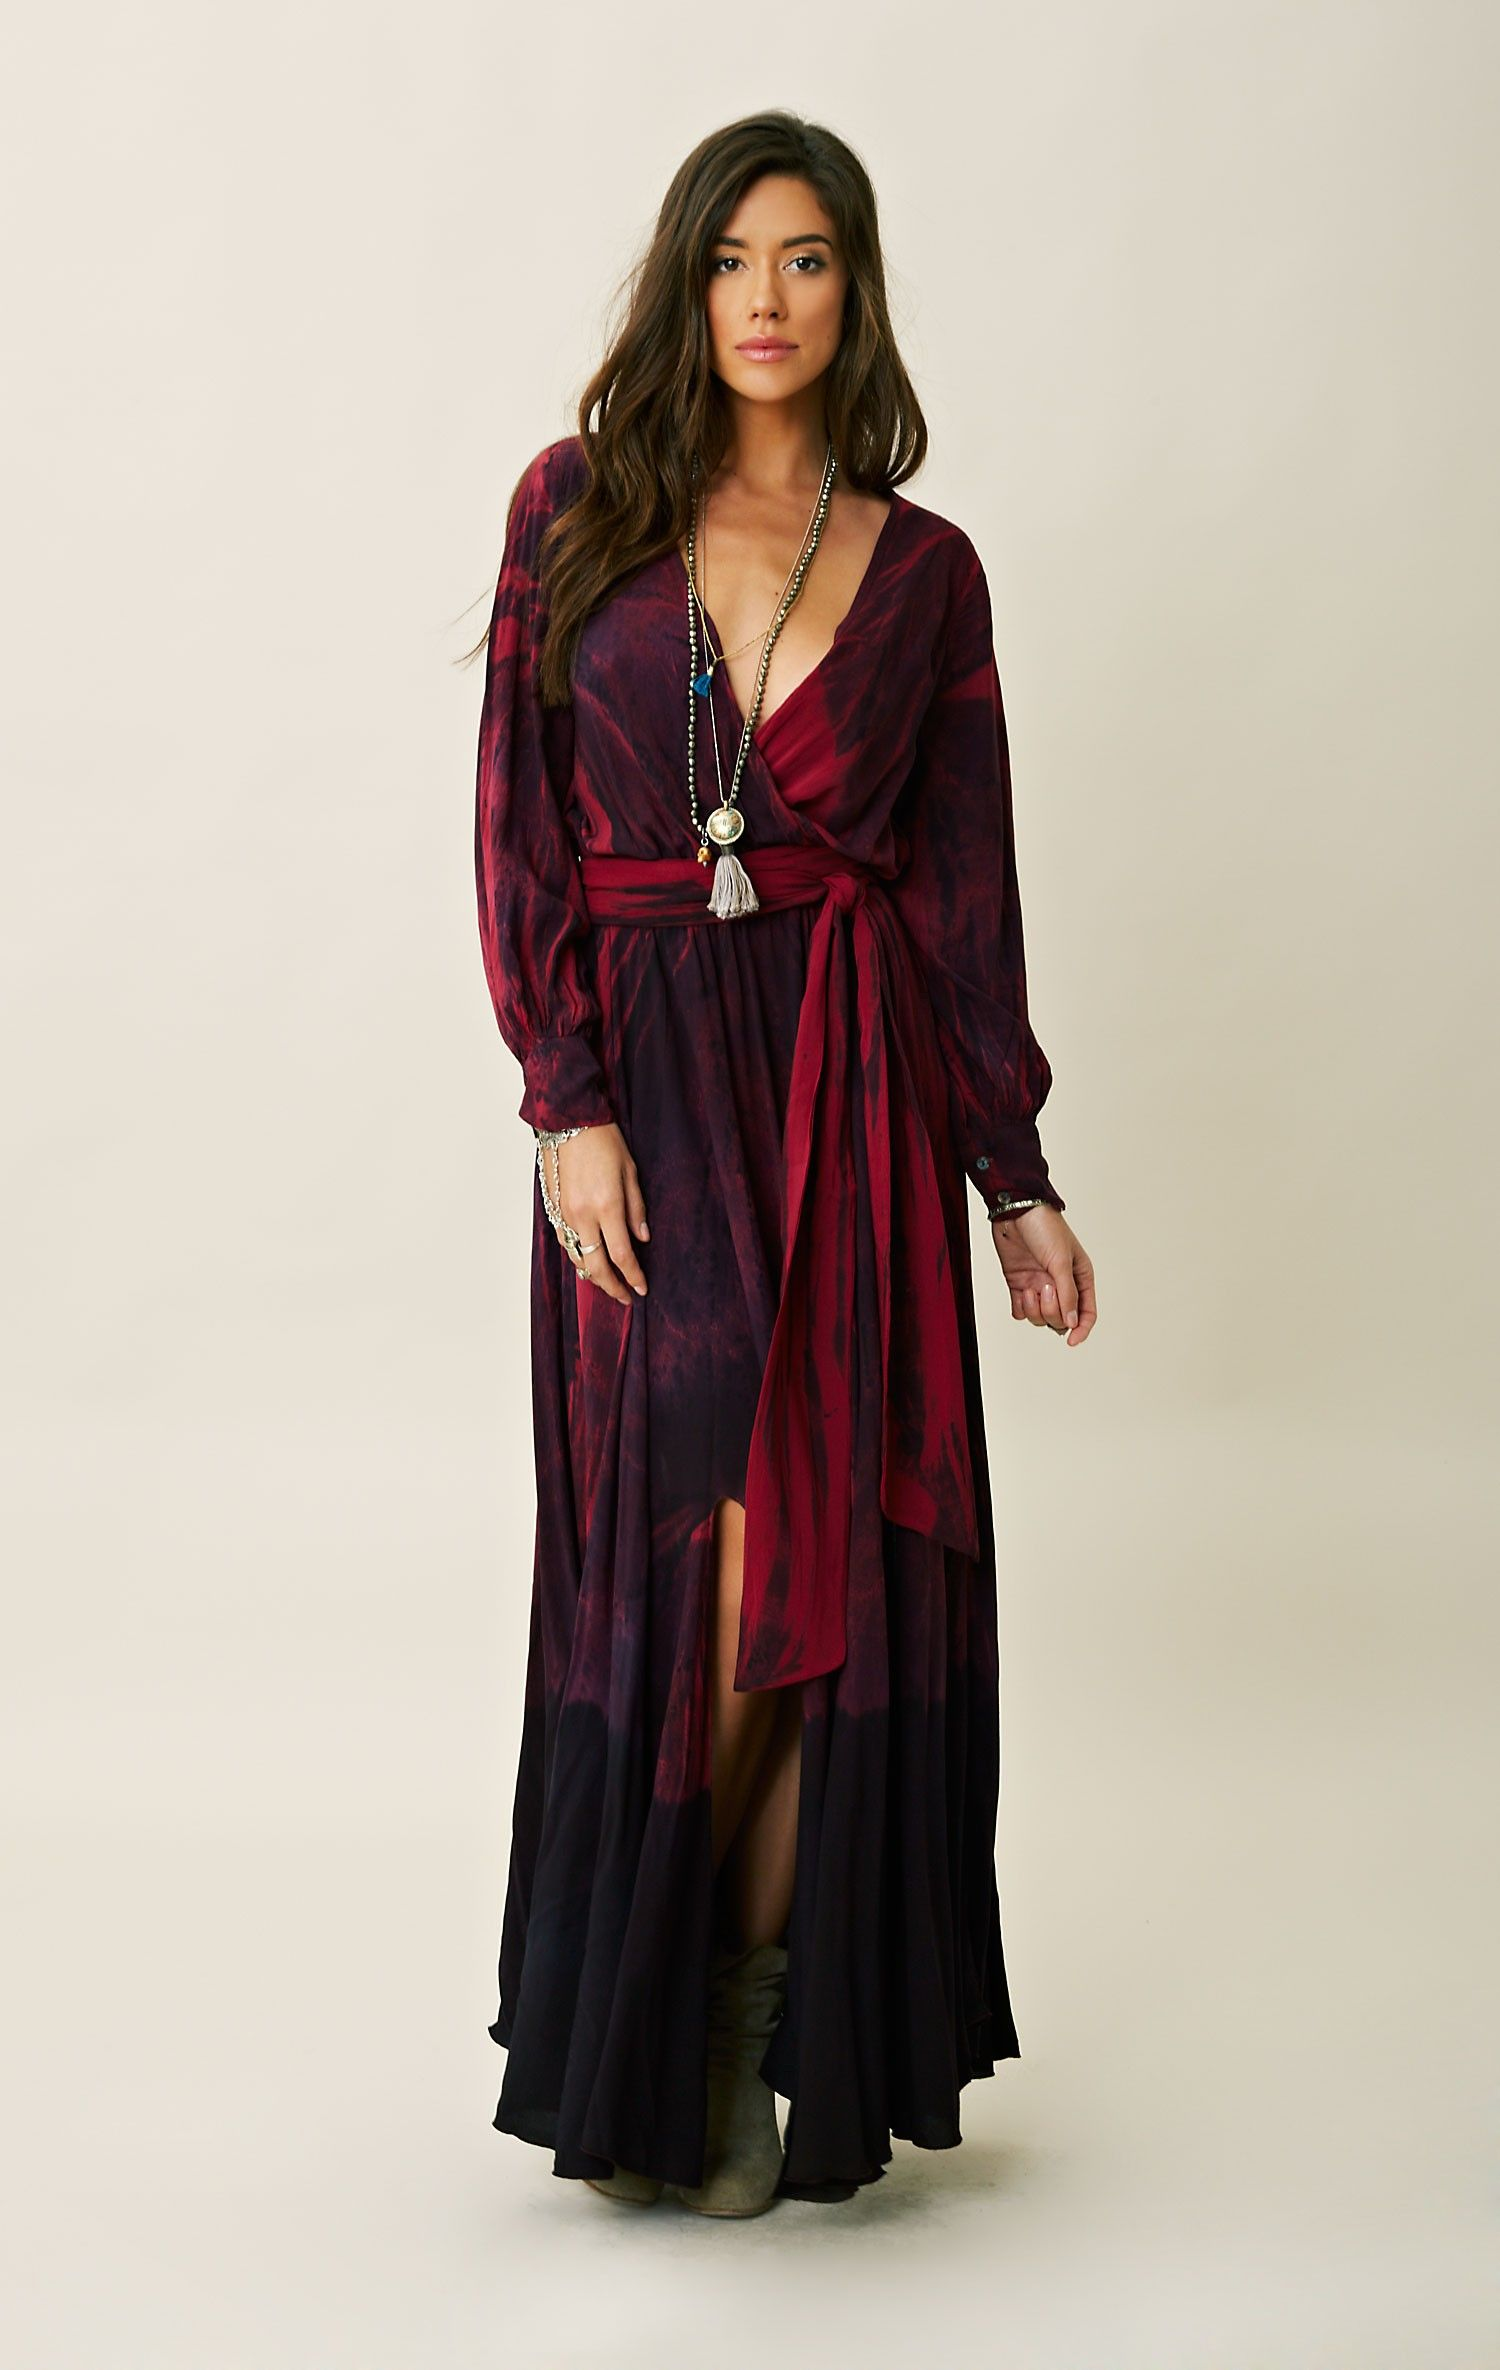 Blu Moon 70 39 S Style Dress My Inner Gypsy Bohemian Heart Pinterest Moon 70s Style And Clothes